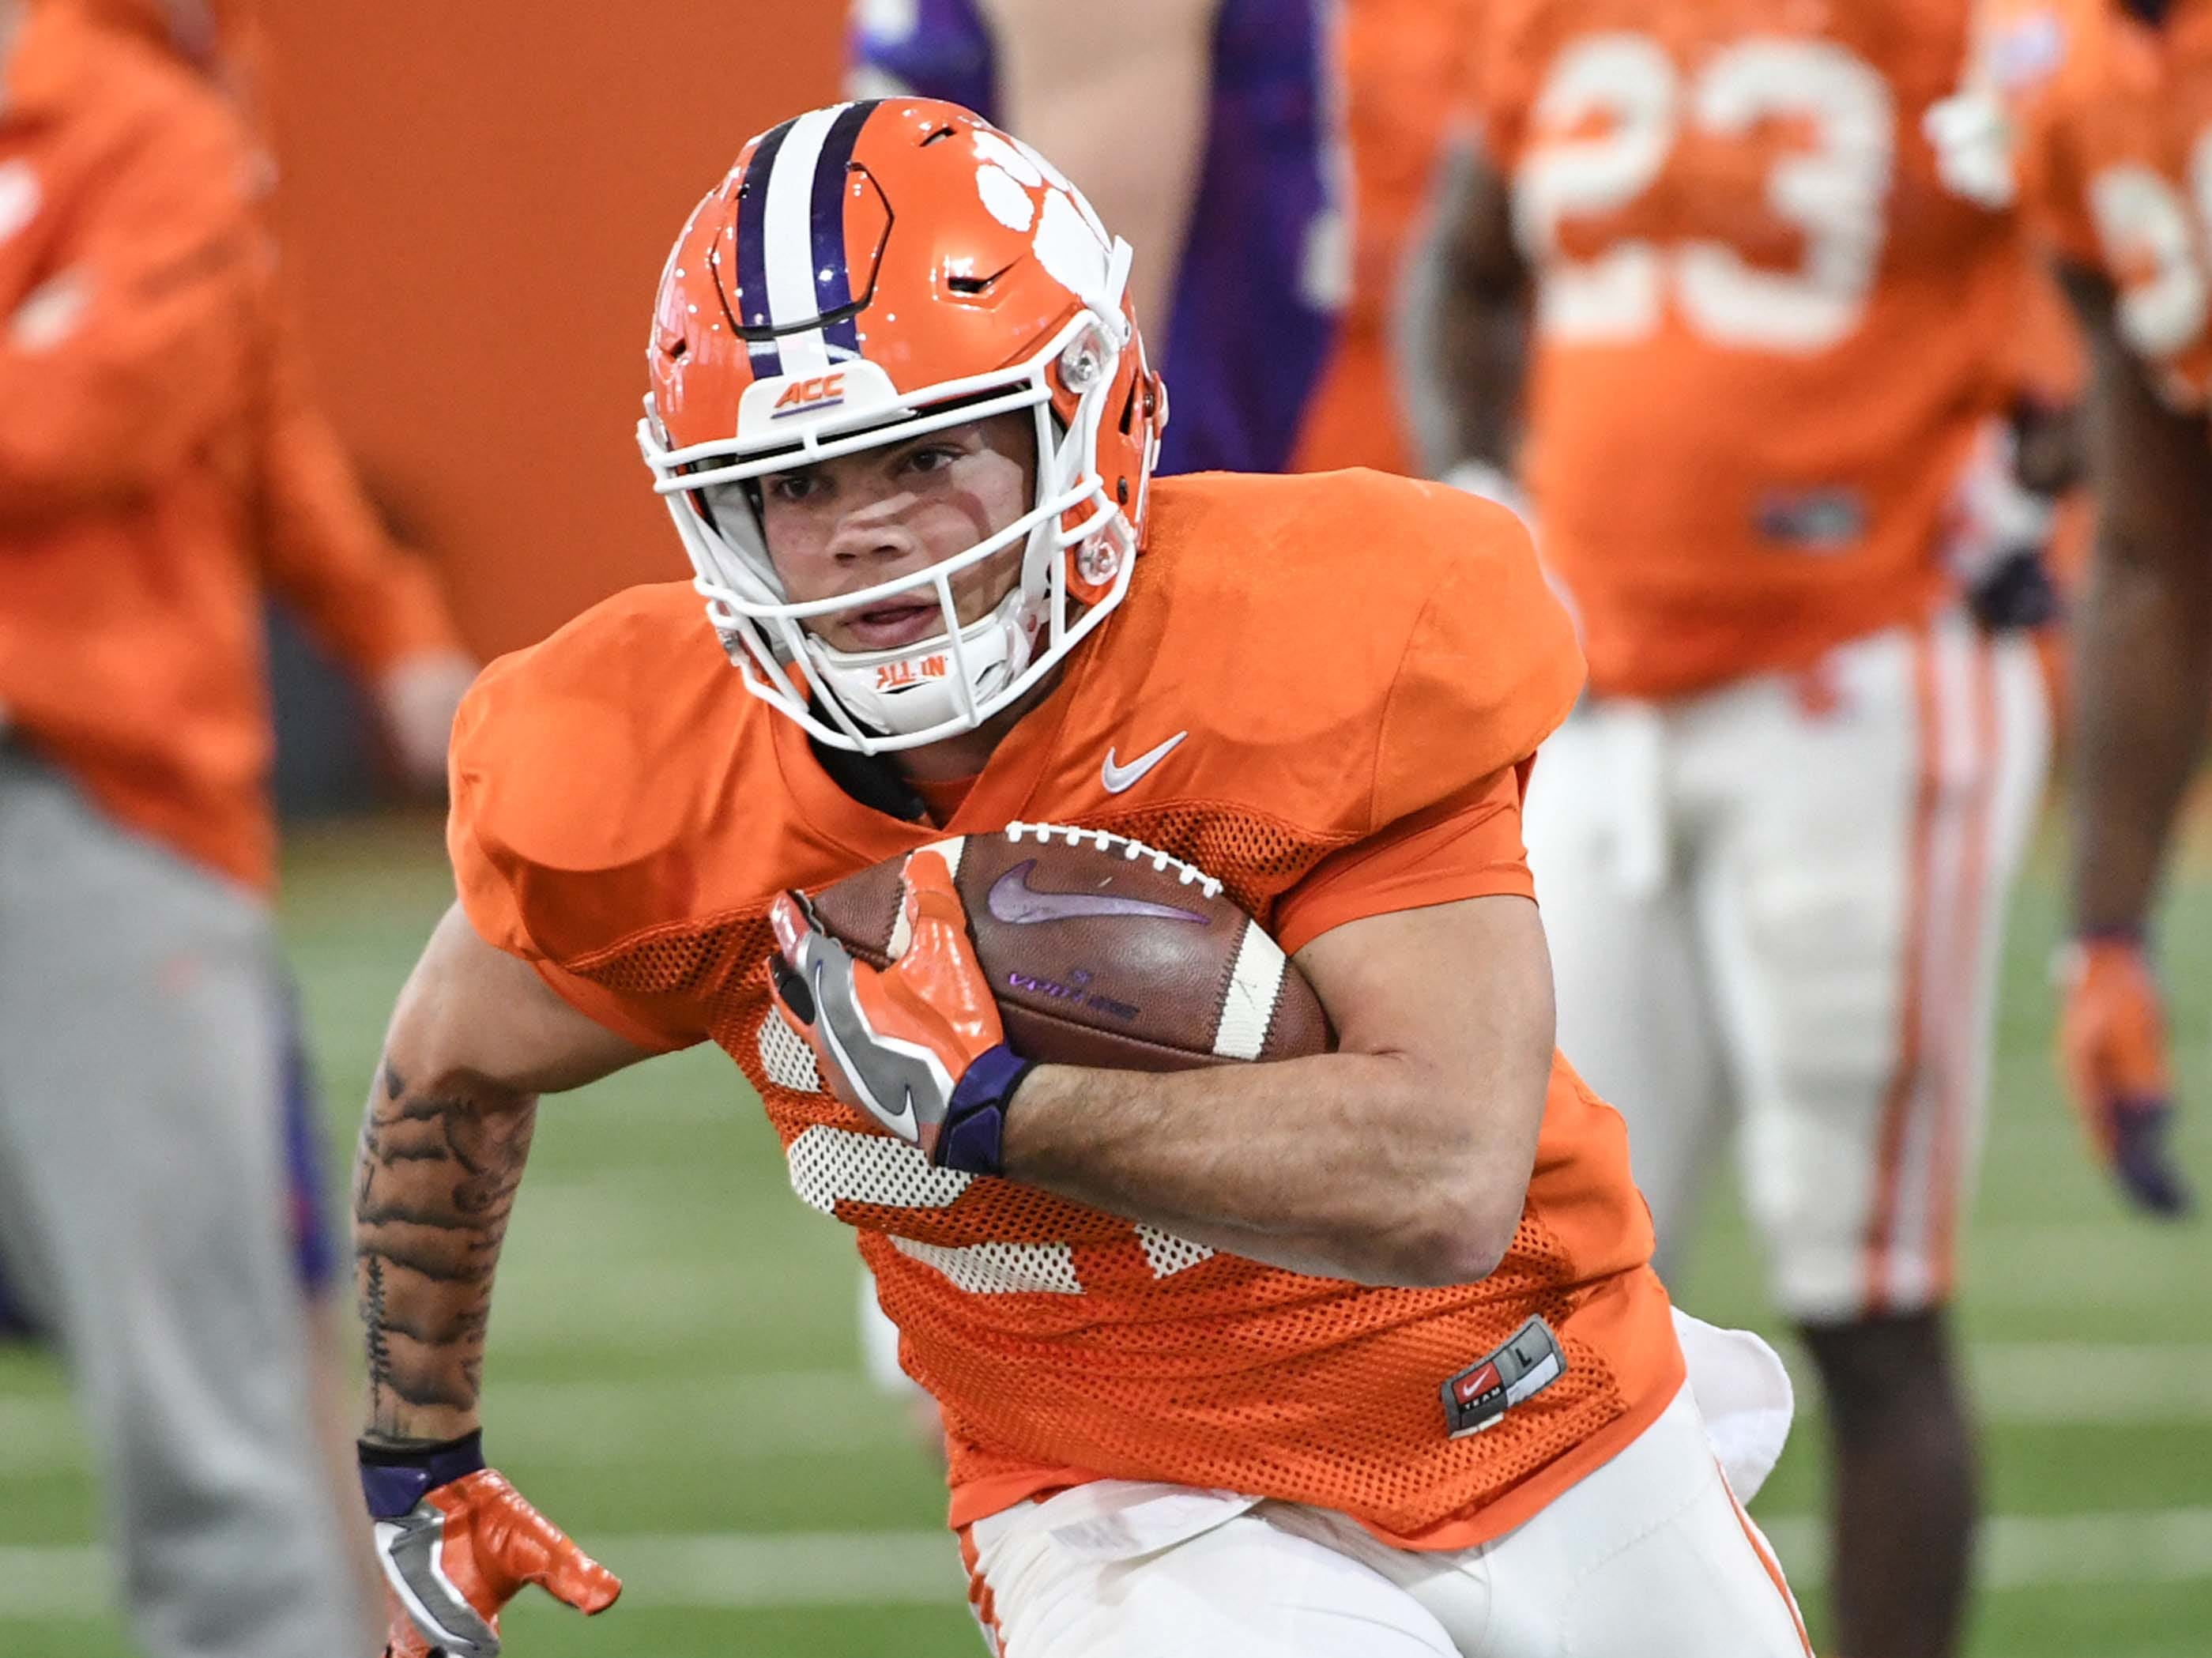 Clemson running back Ty Lucas(27) runs during practice at the Poe Indoor Facility in Clemson Monday.